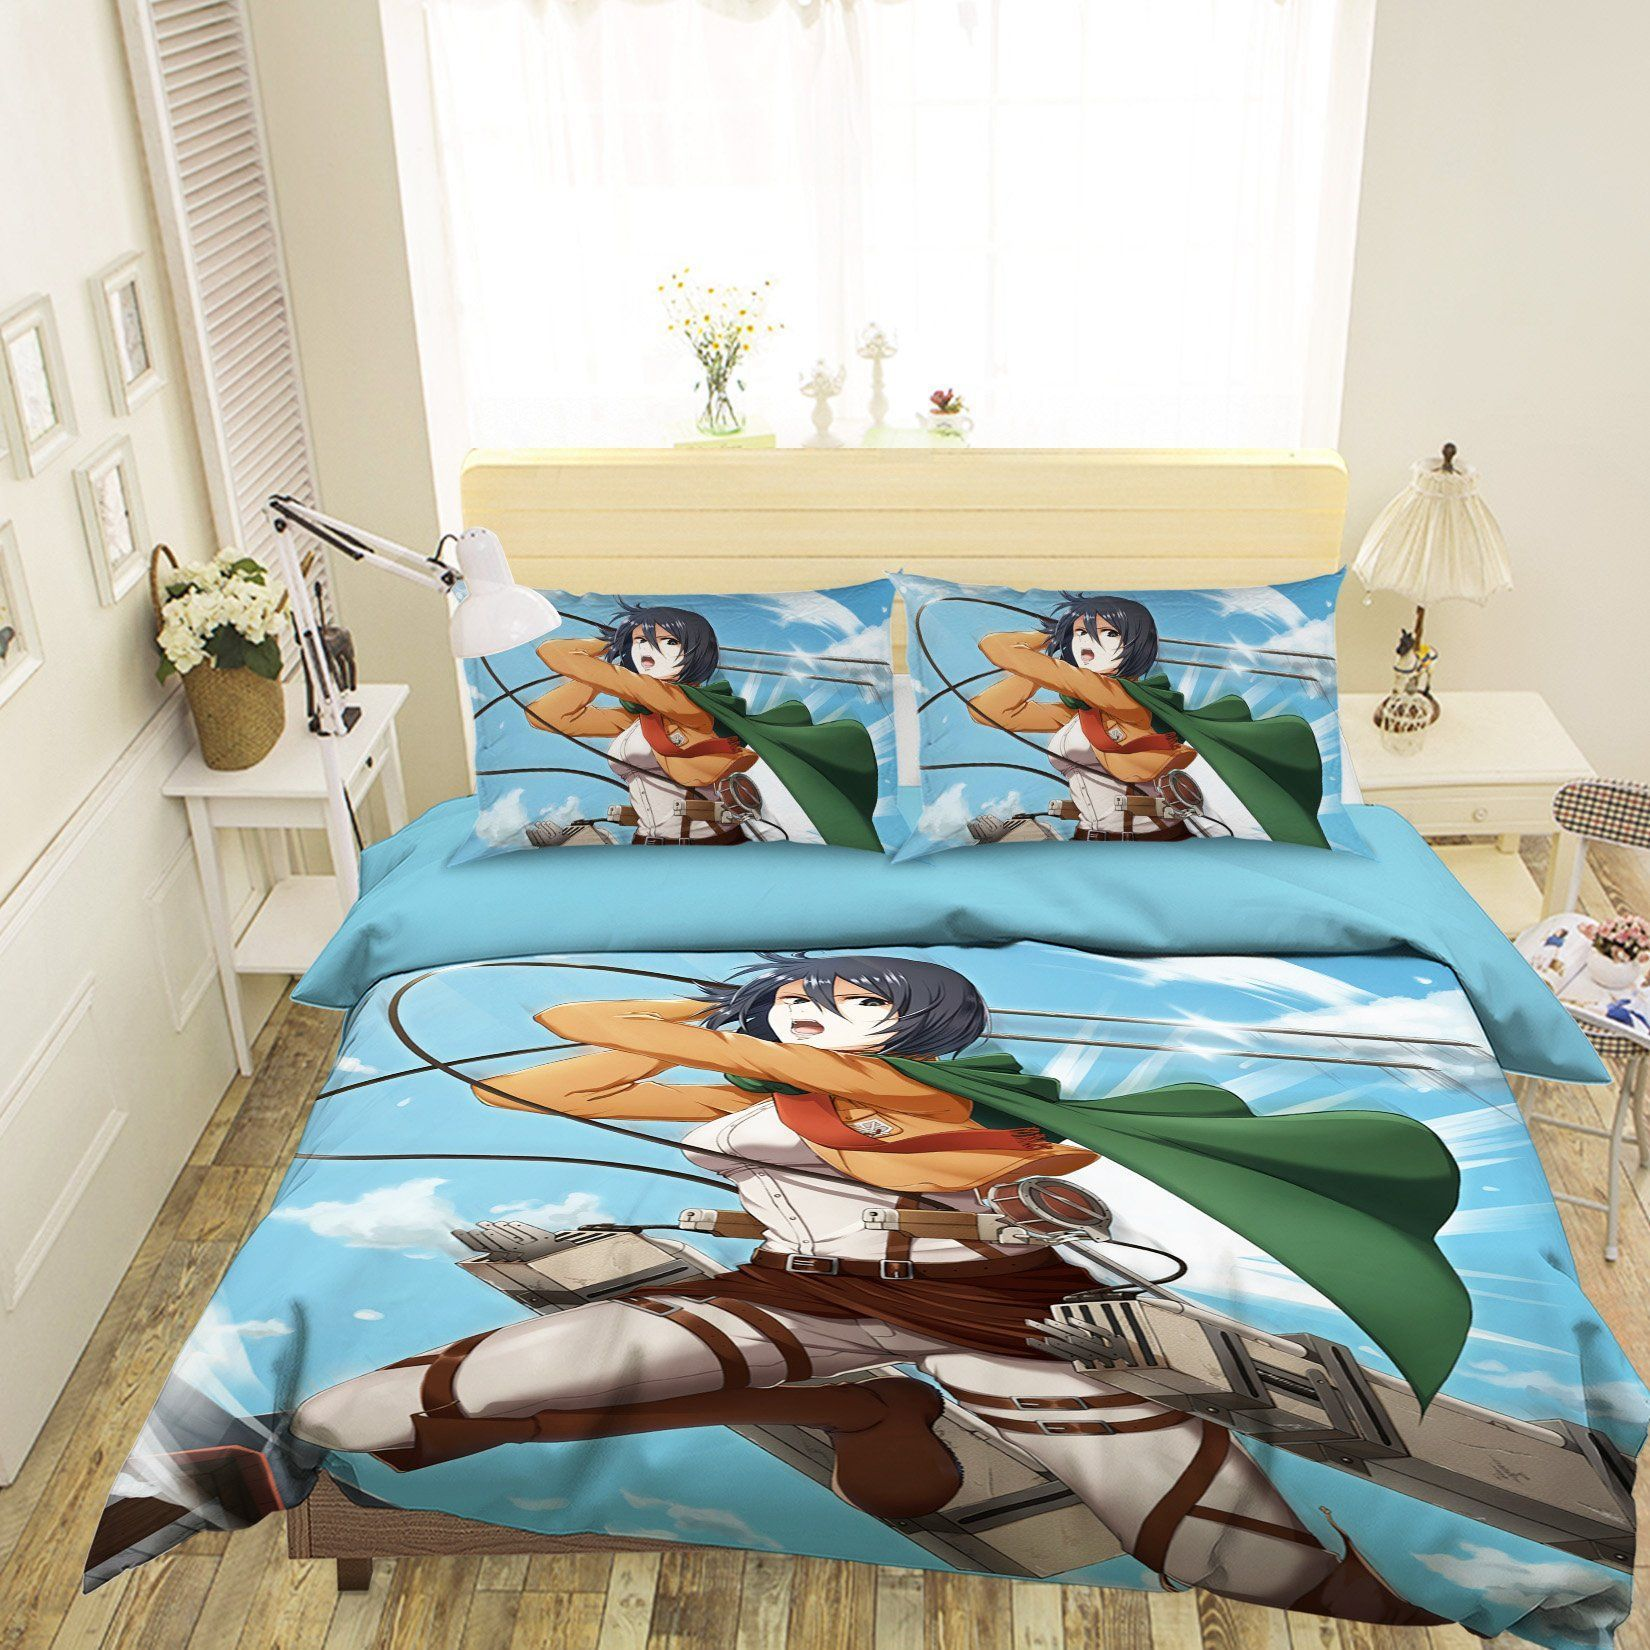 3D Attack On Titan 07 Anime Bed Pillowcases Quilt Quiet Covers AJ Creativity Home